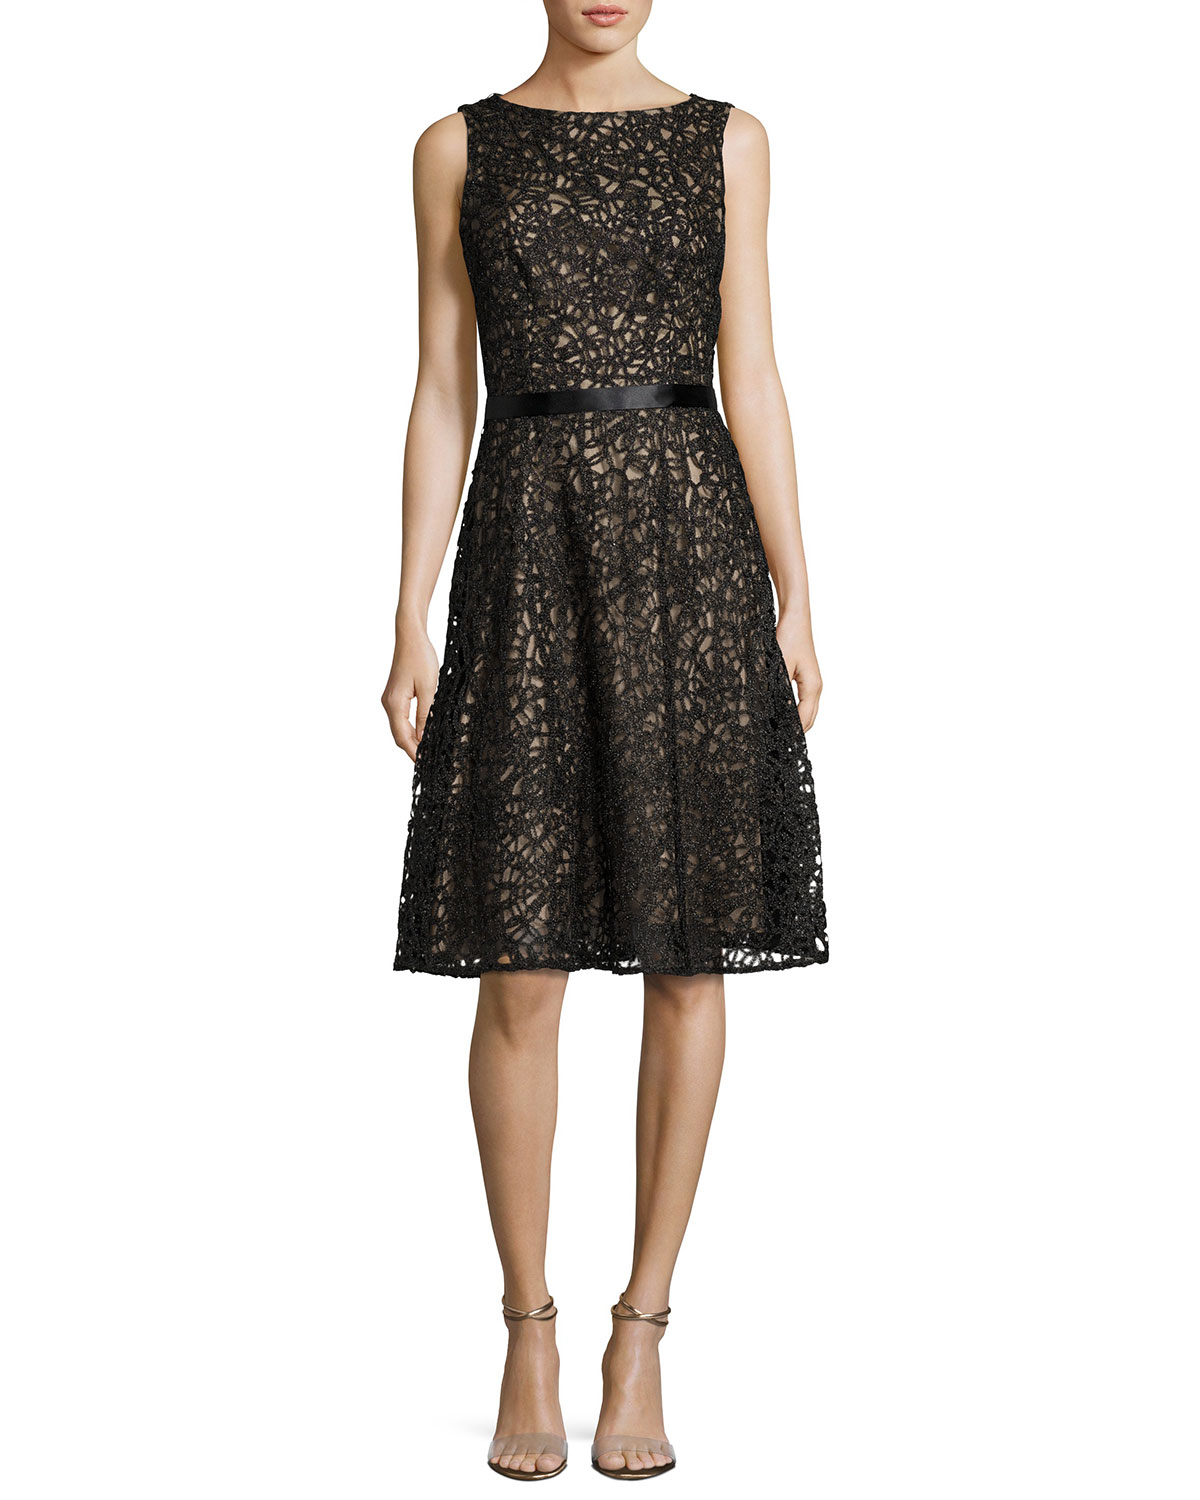 Macramé Sleeveless Cocktail Dress, Black